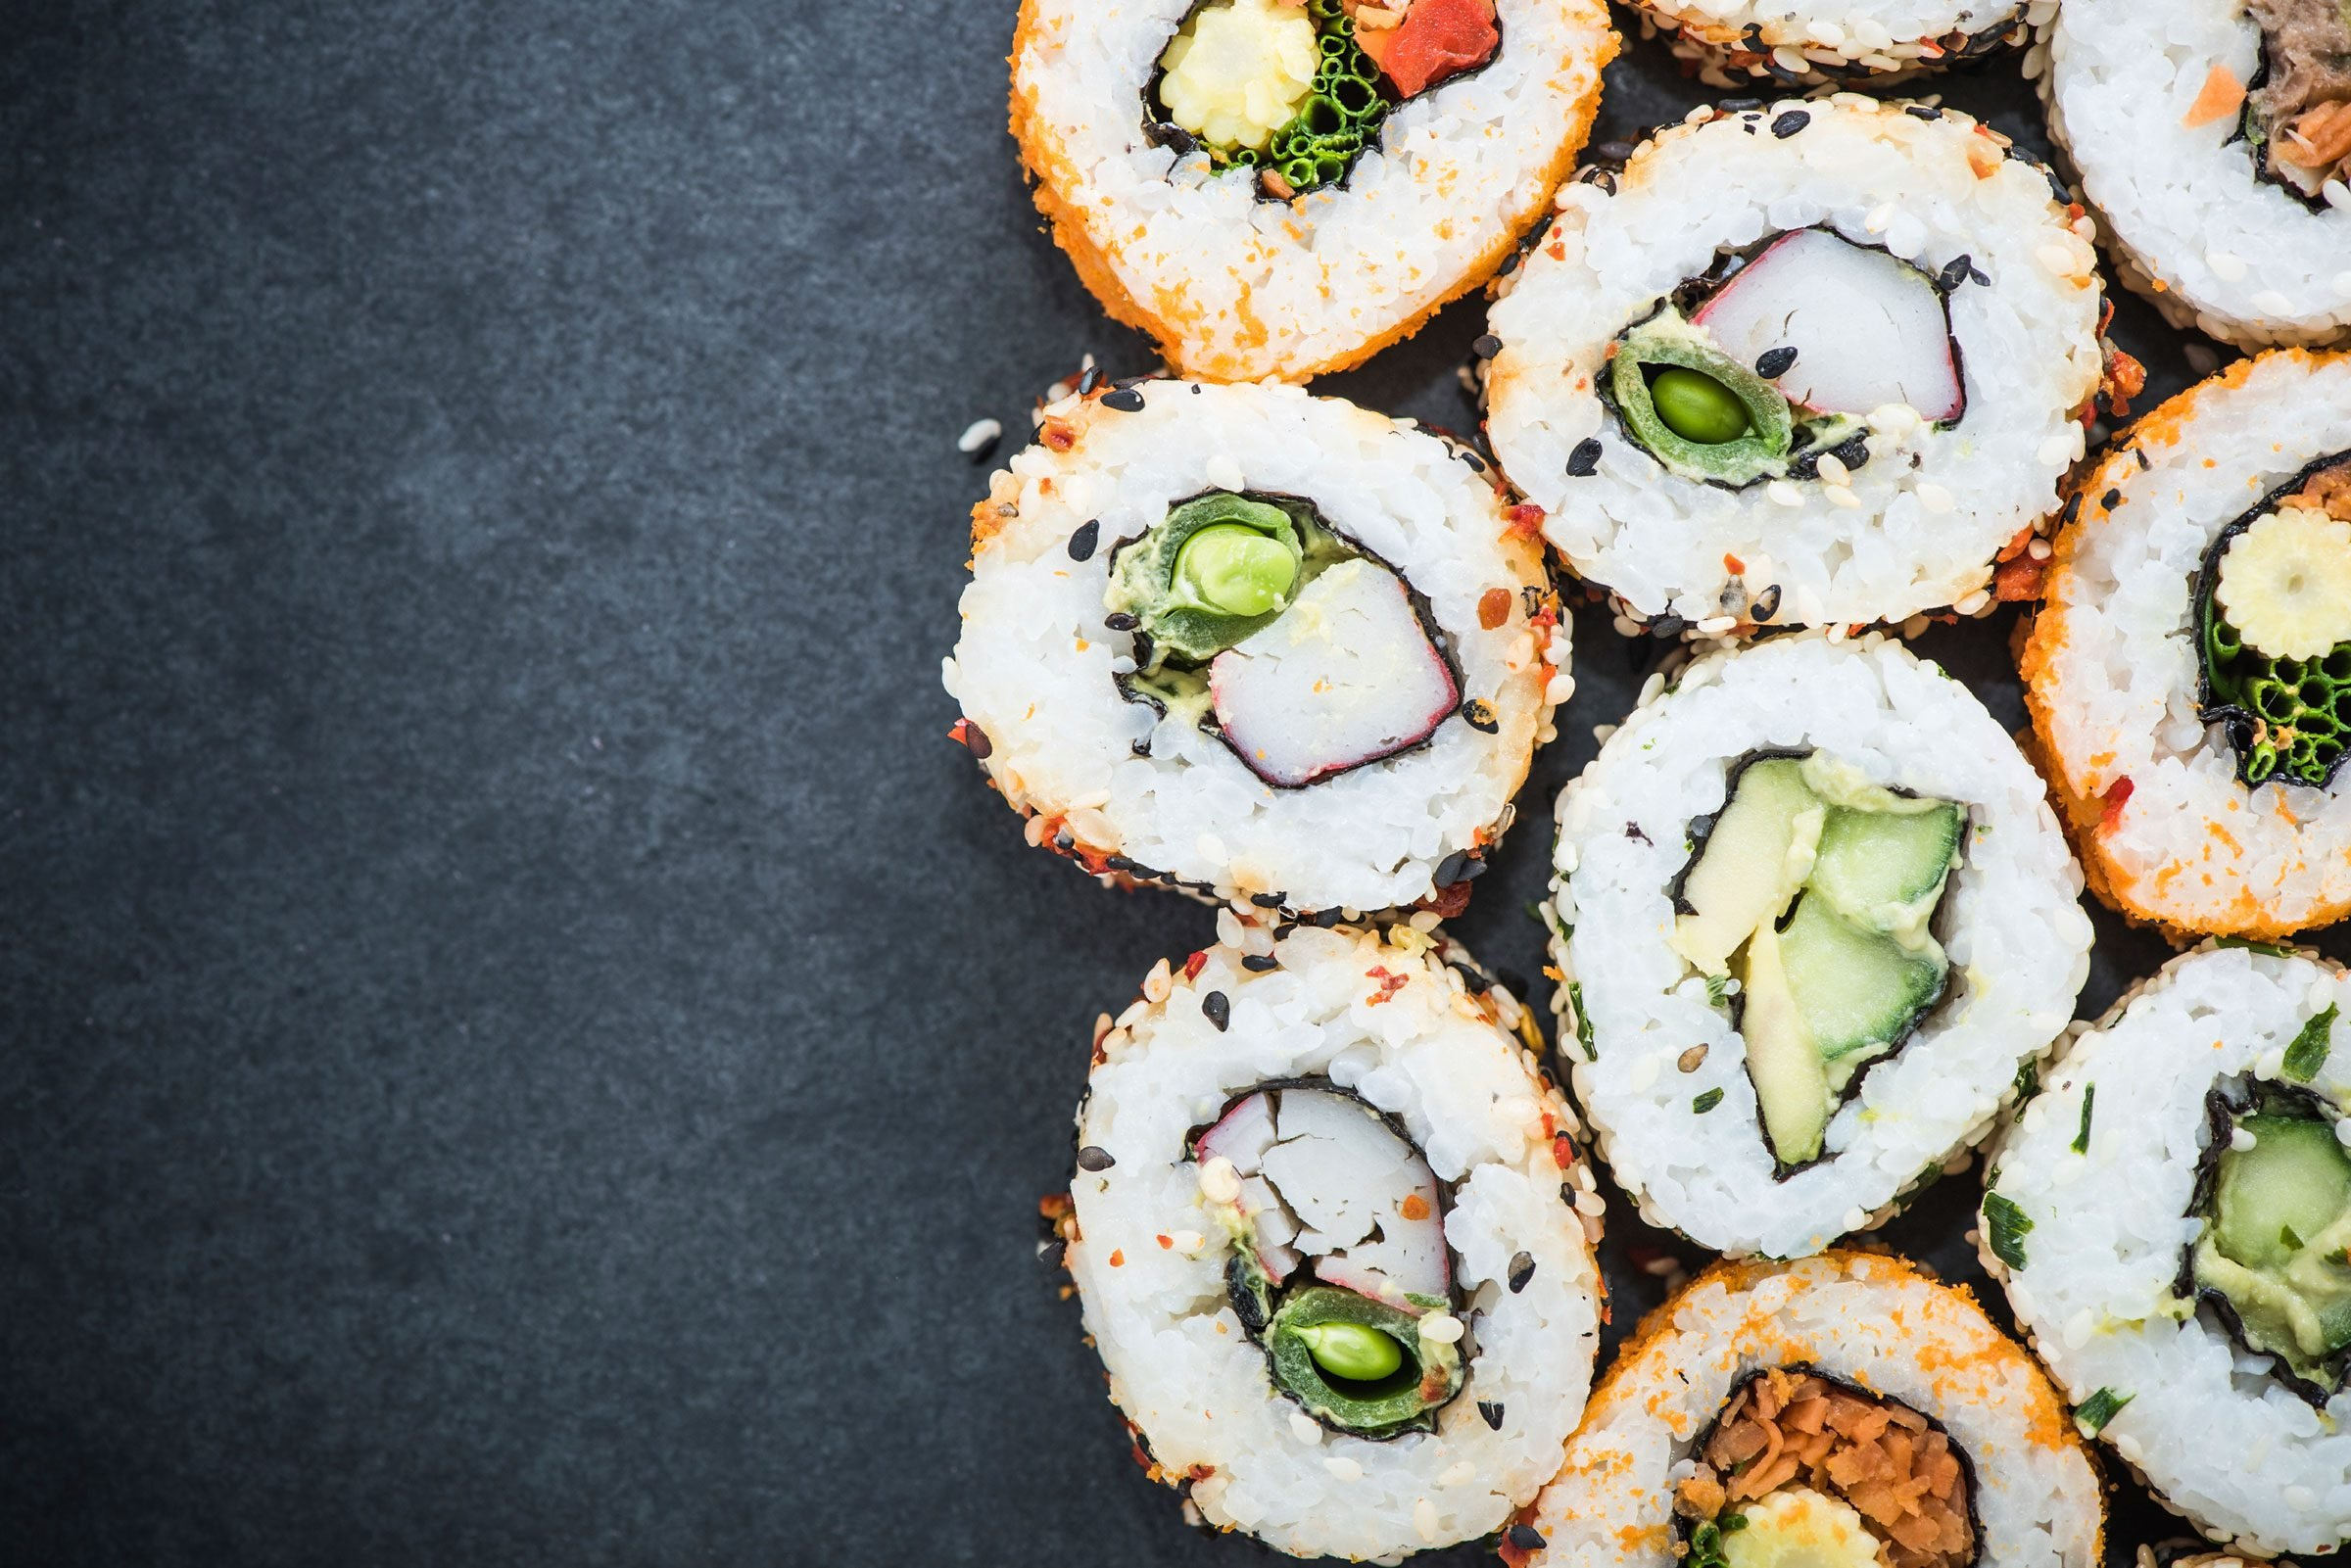 Head to the sushi station for a protein-packed prepared meal.